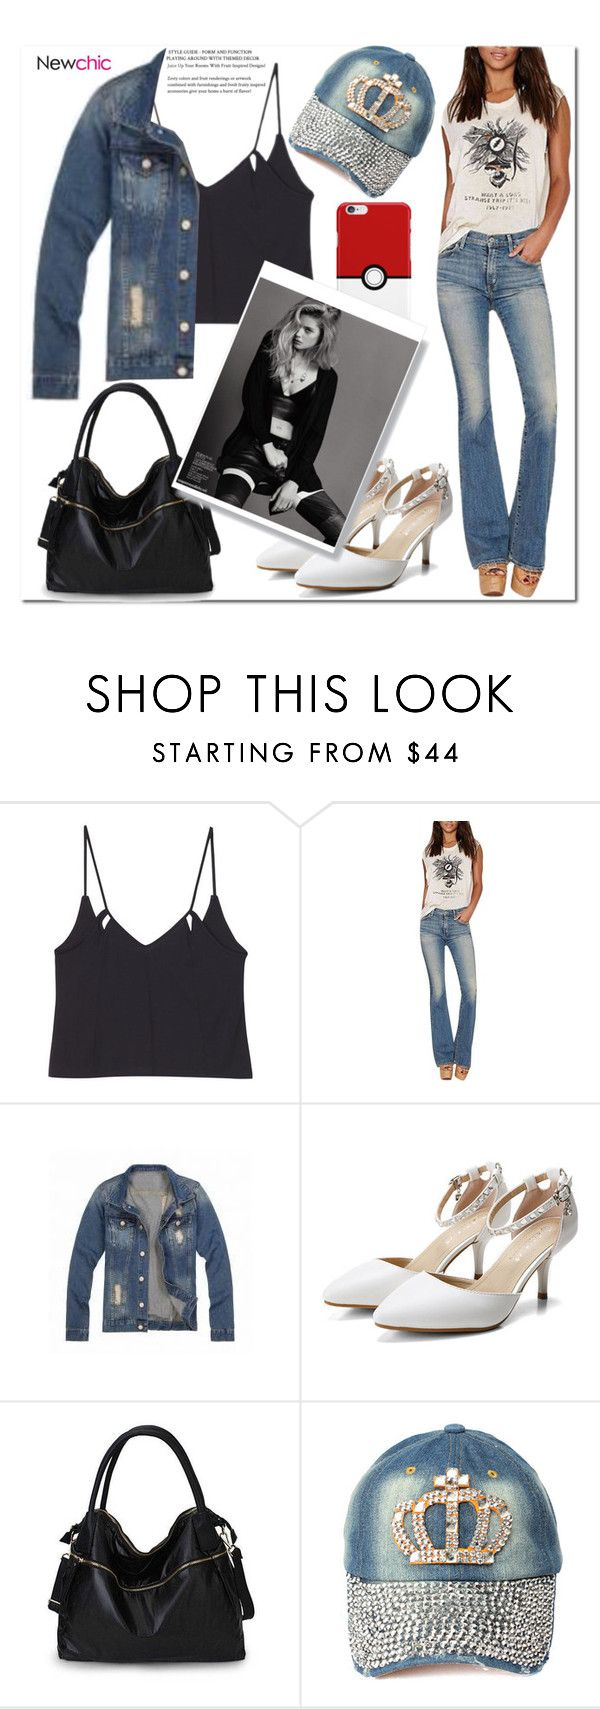 """Alice#I LOVE NEWCHIC#Newchicstyle"" by alice-666-179 ❤ liked on Polyvore featuring denimjackets and WardrobeStaples"